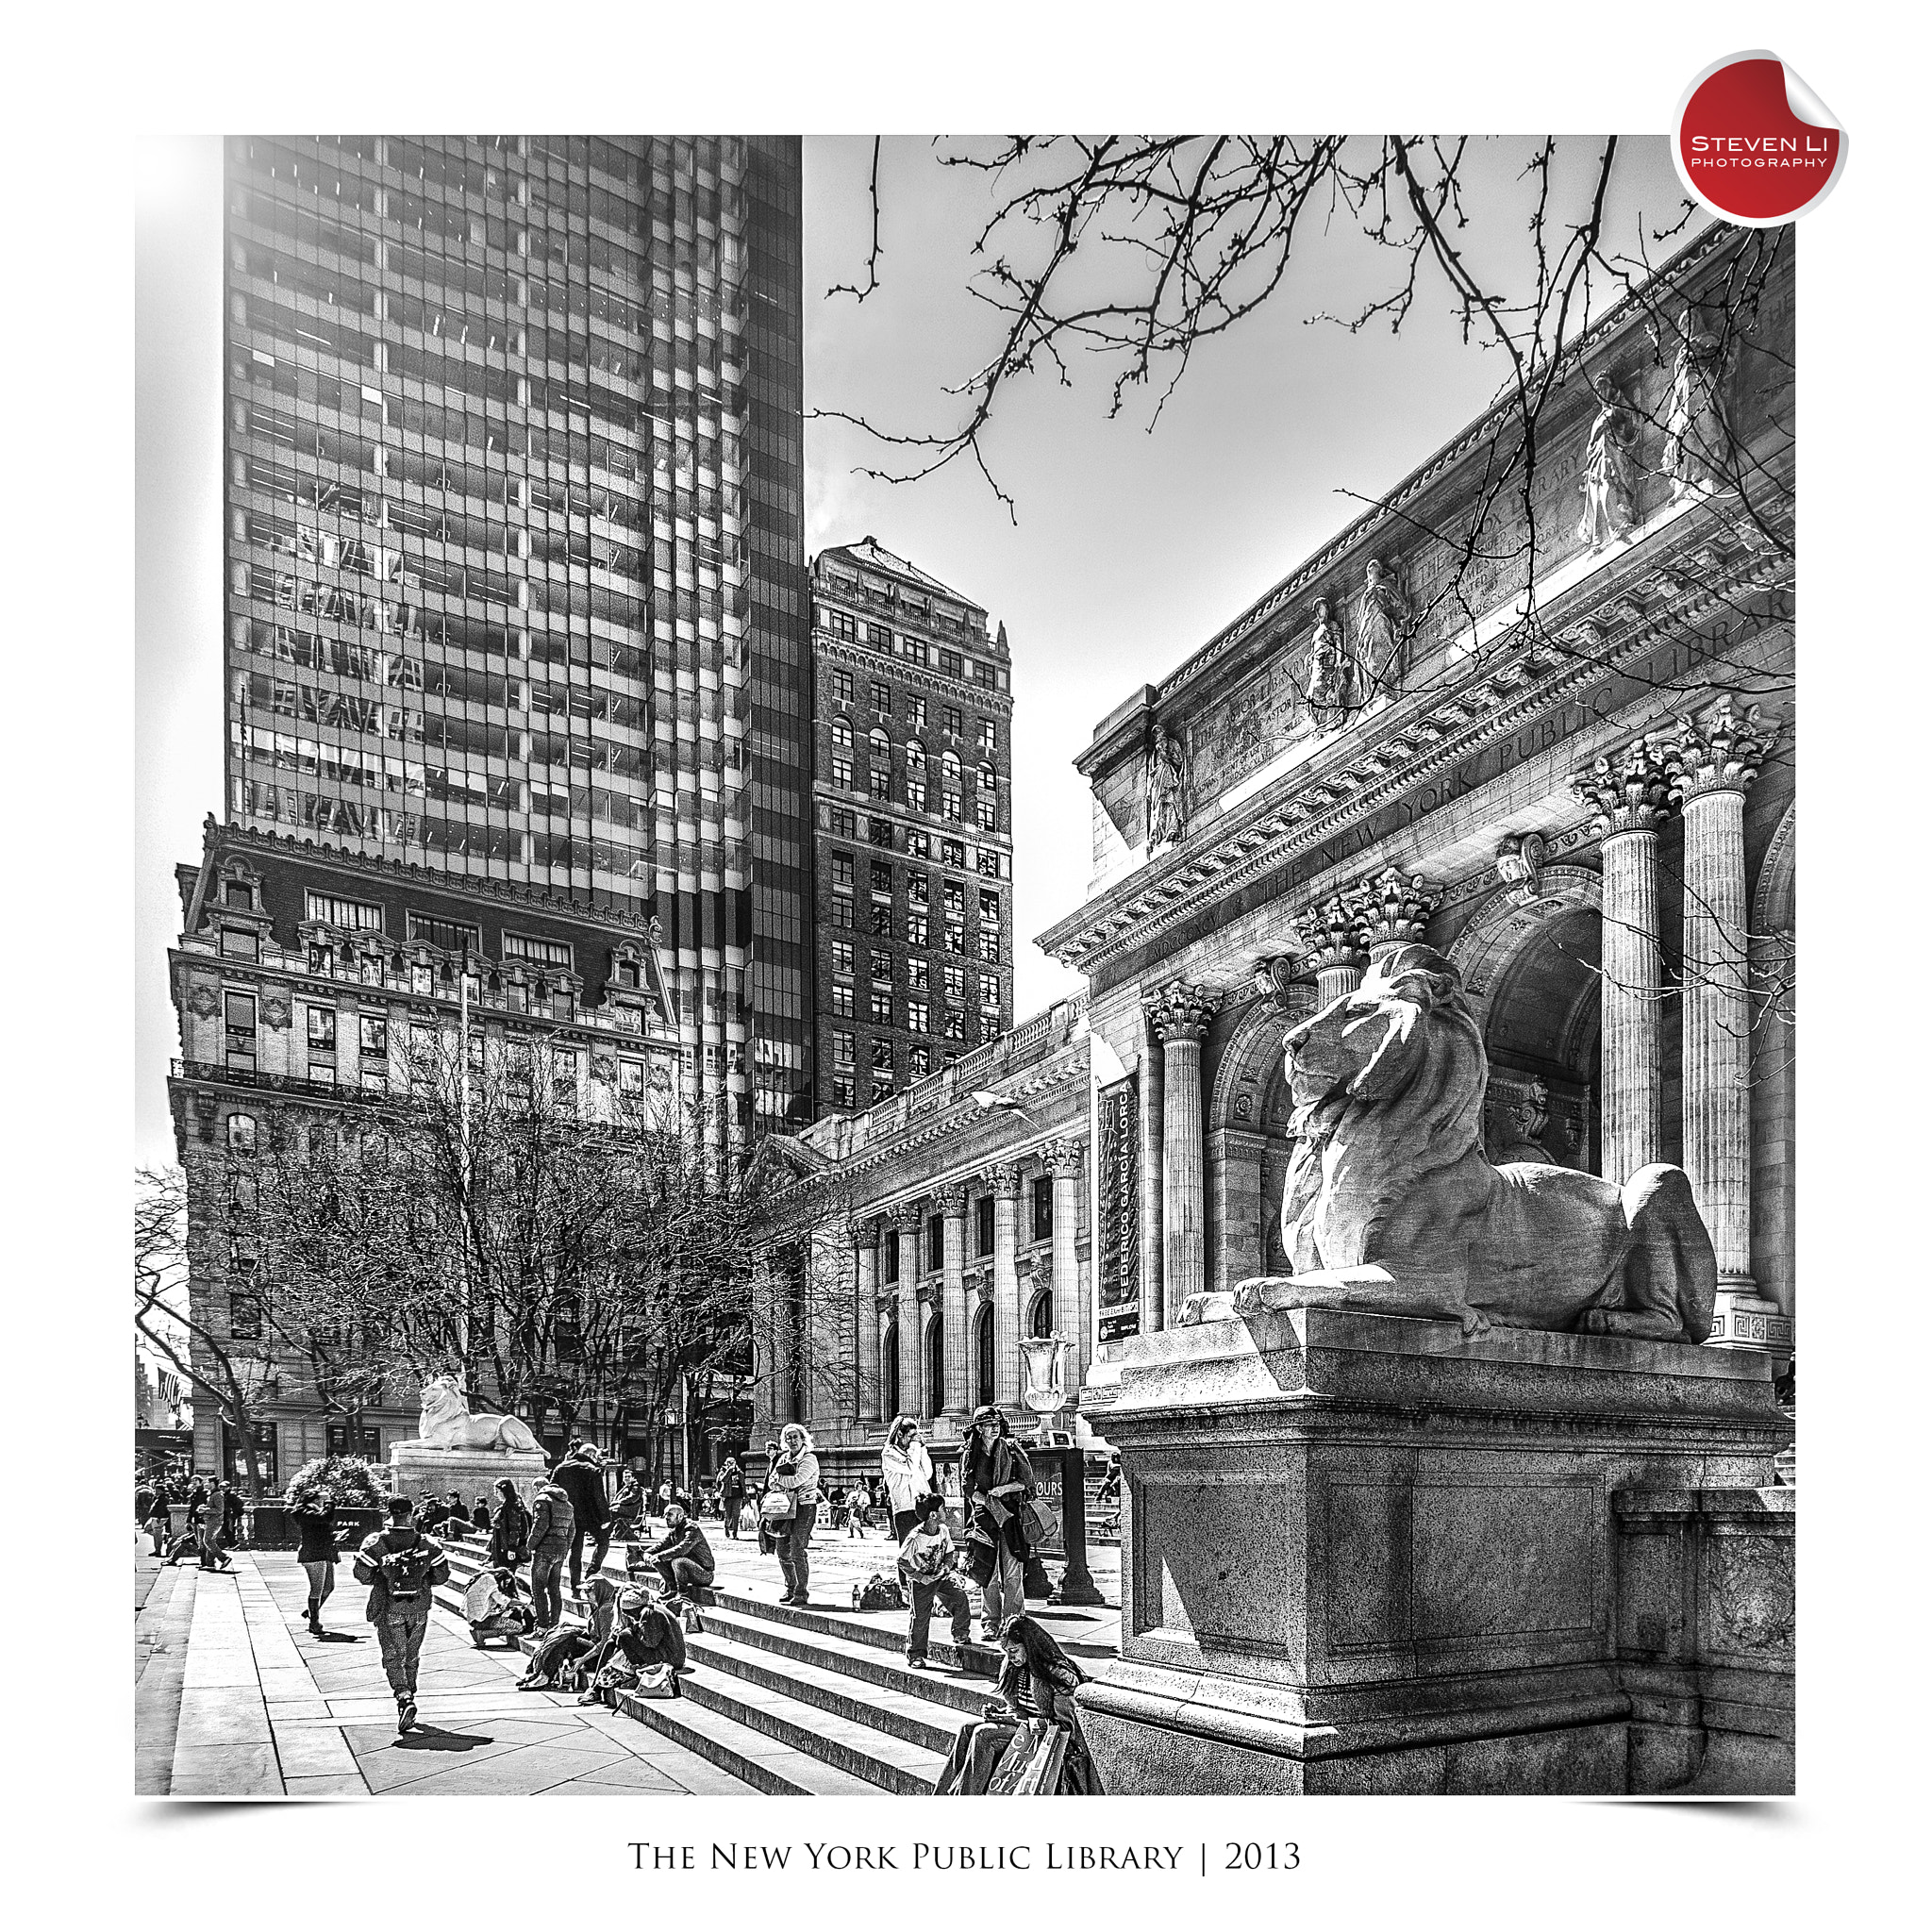 Photograph The New York Public Library by Steven Li on 500px